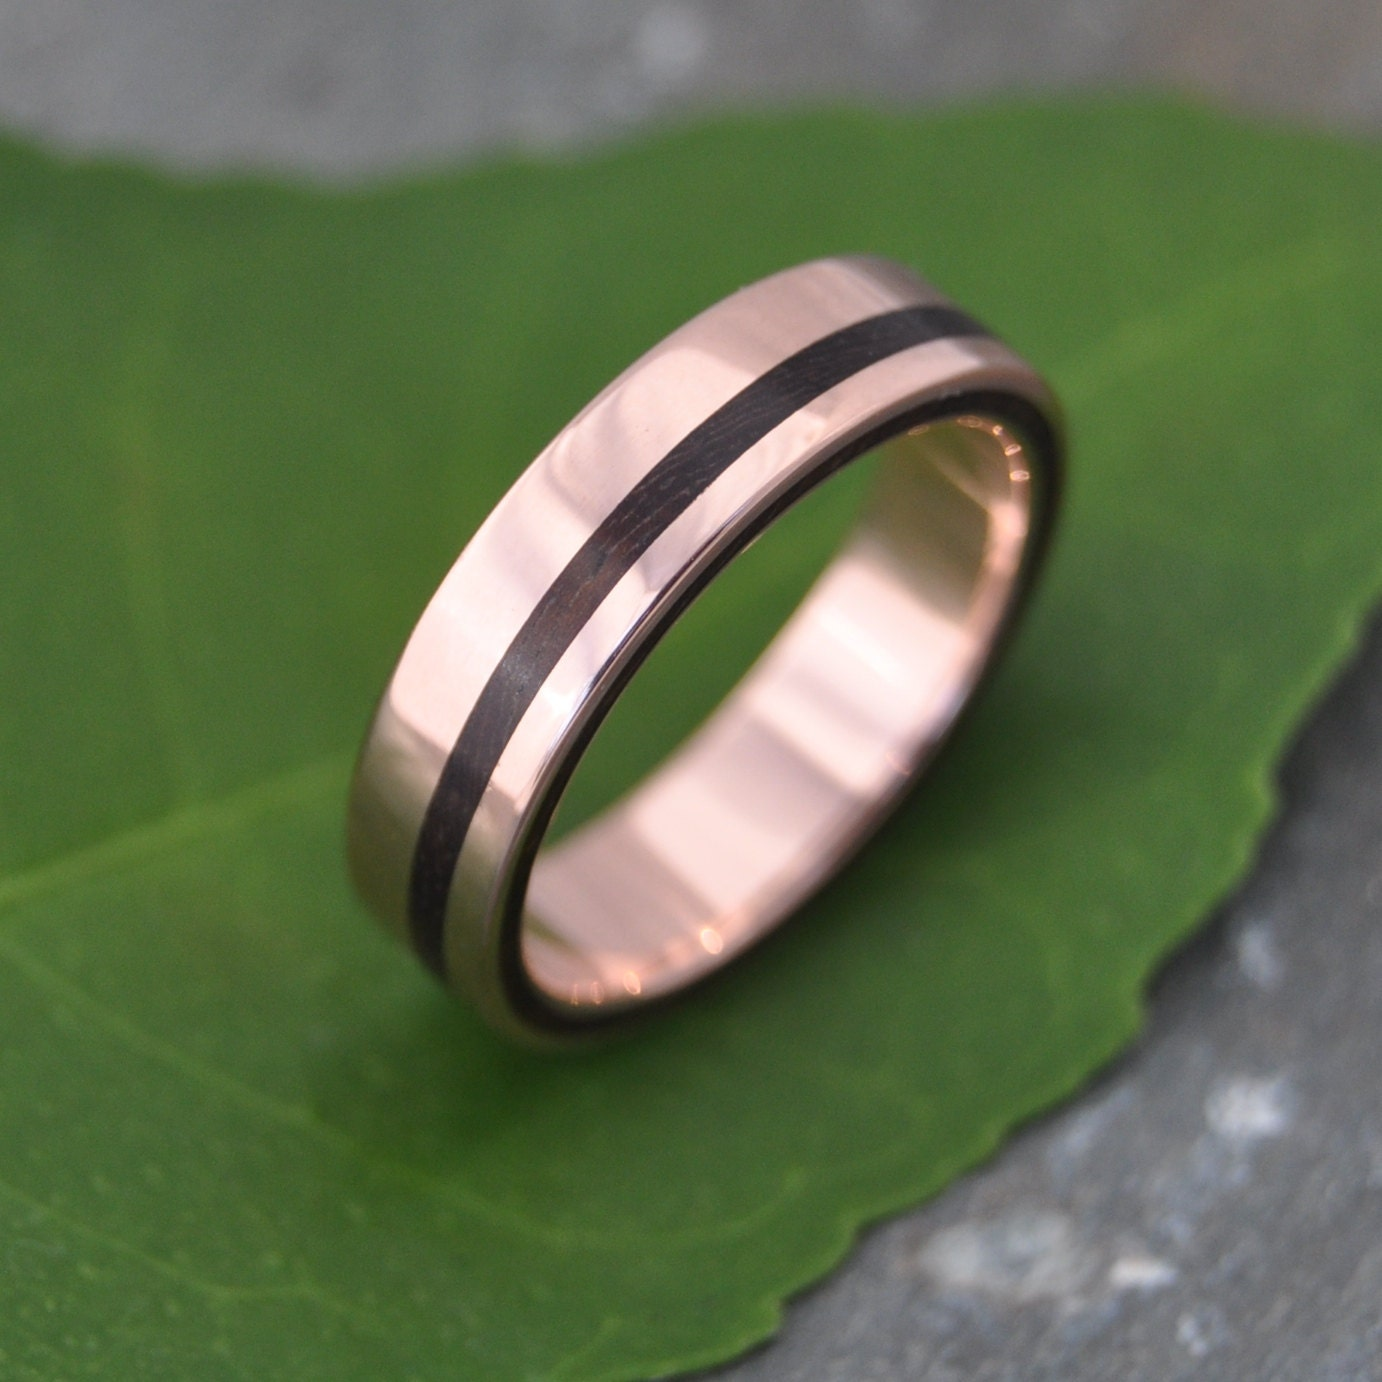 Rose Gold Wood Ring Equinox Nacascolo ecofriendly recycled